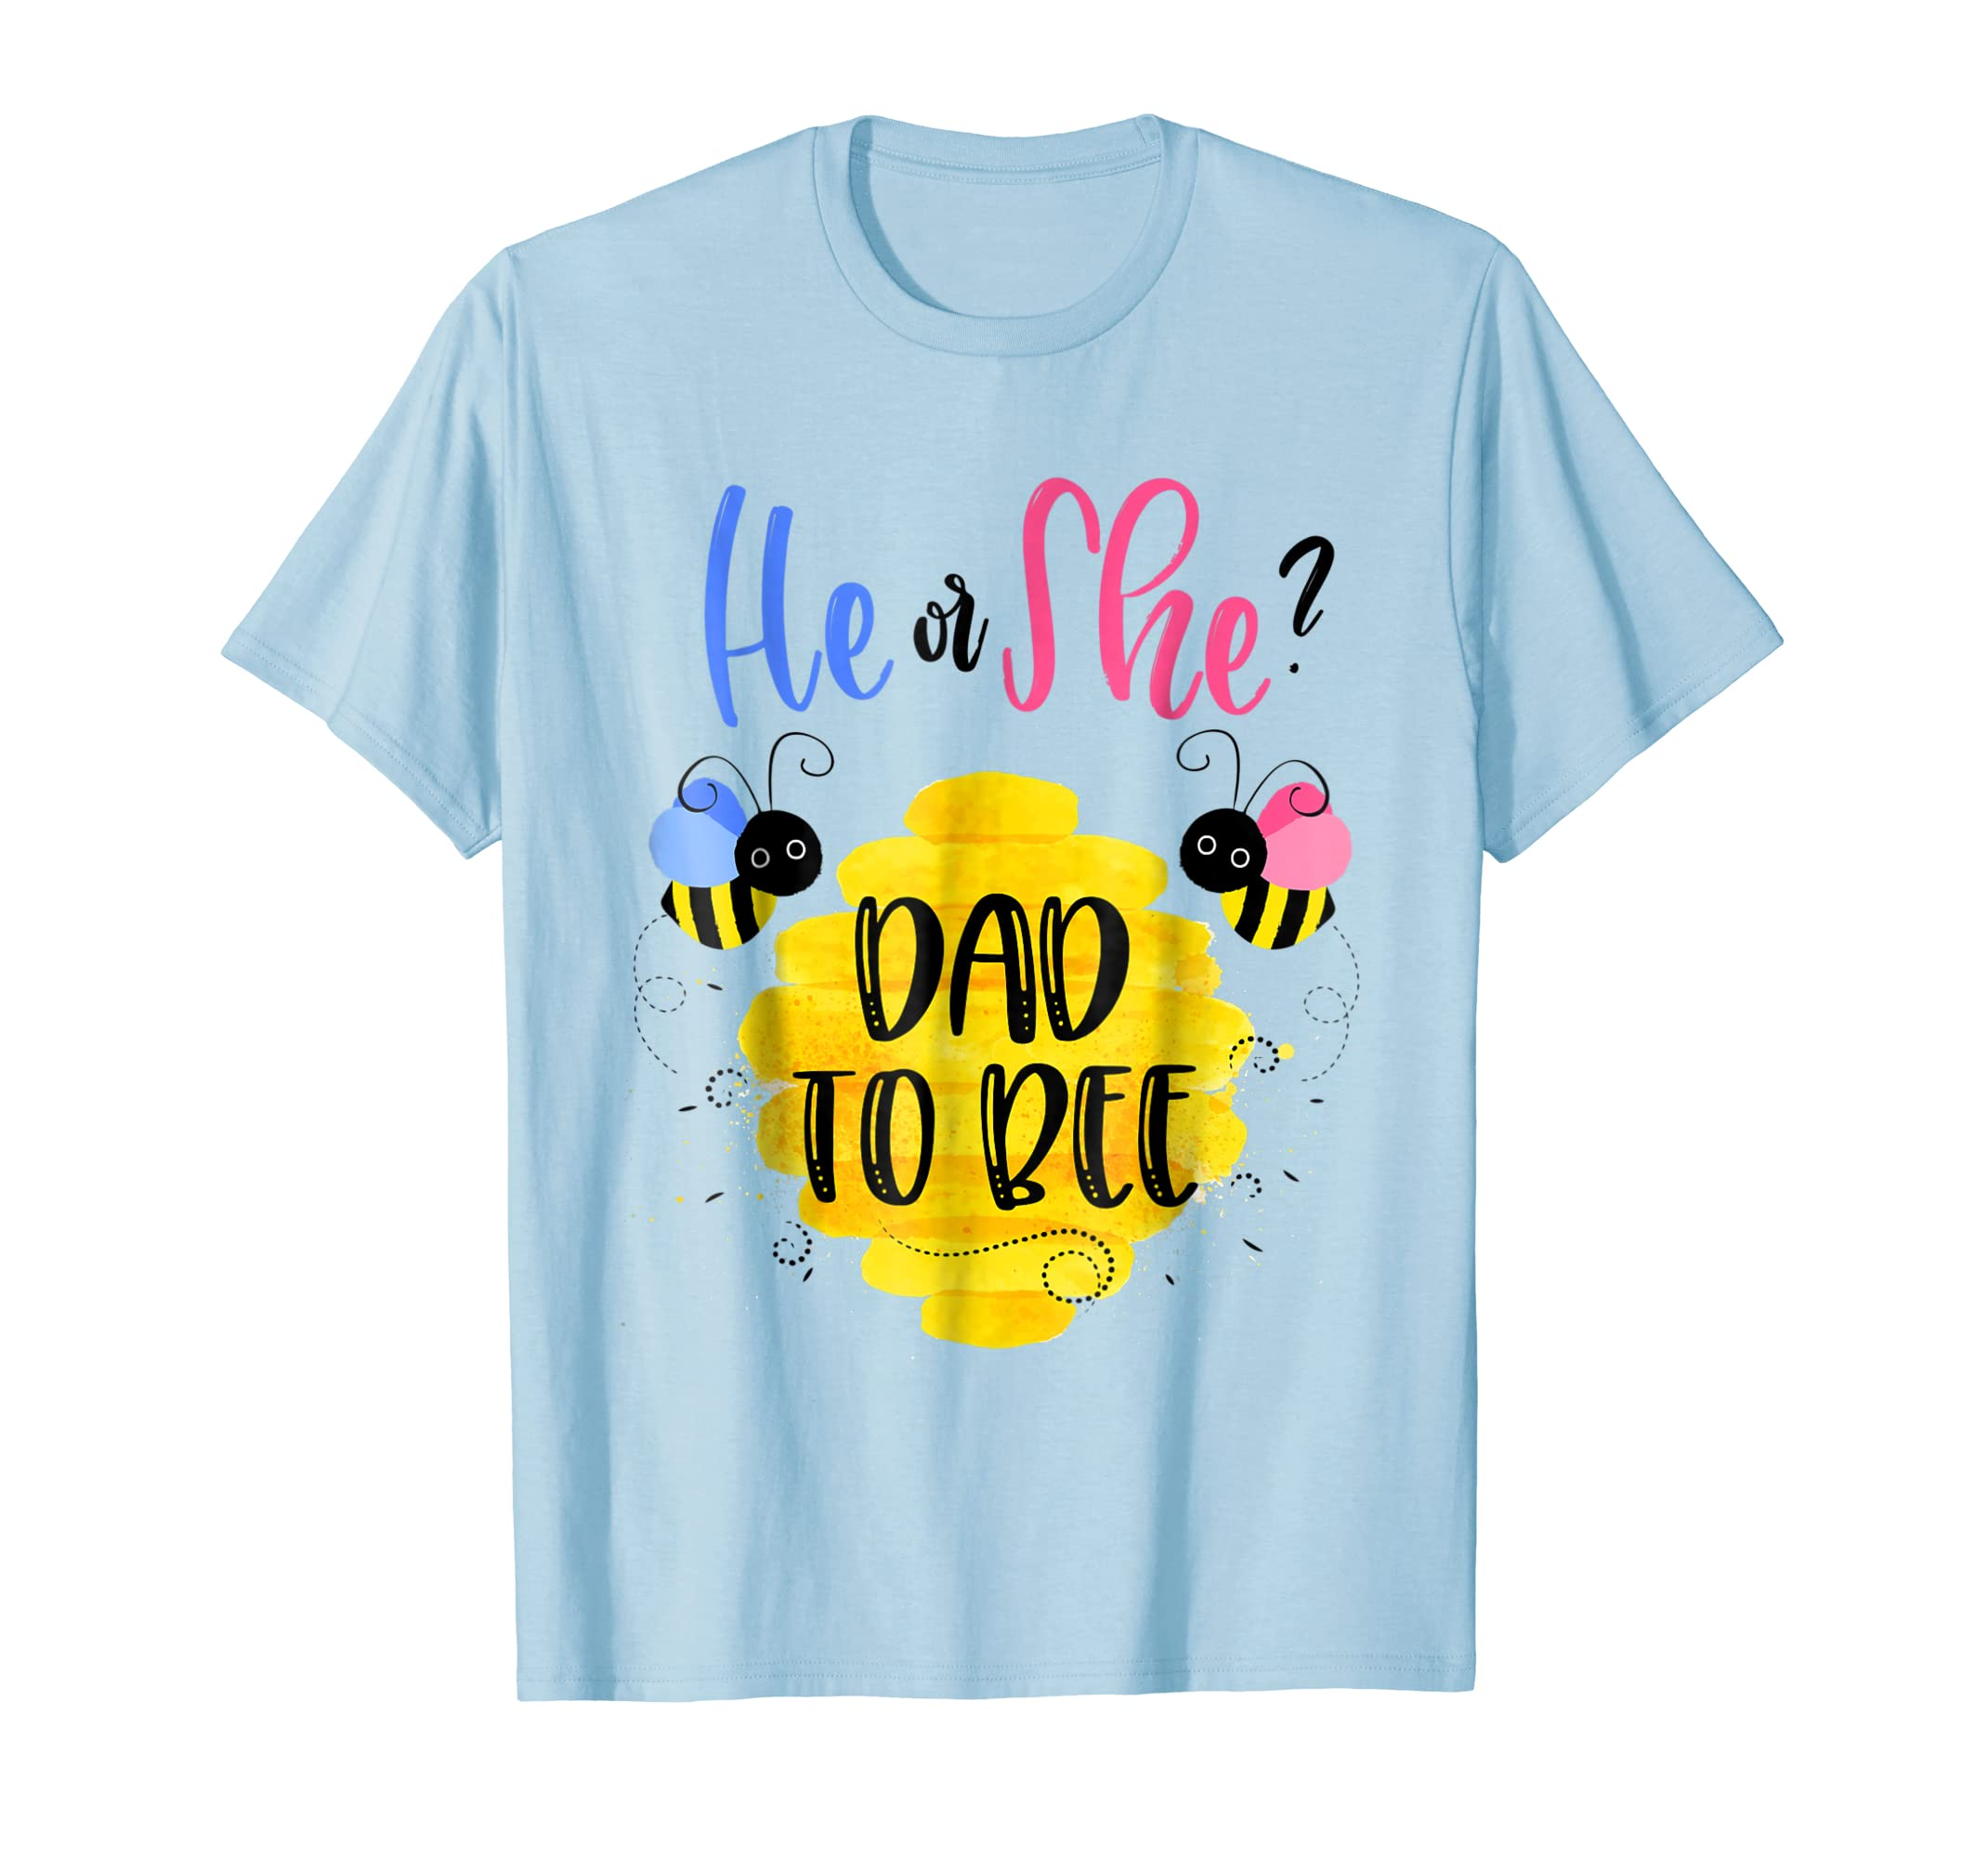 eafd9a51f Mens Gender Reveal What Will It Bee Shirt He or She Dad T-Shirt